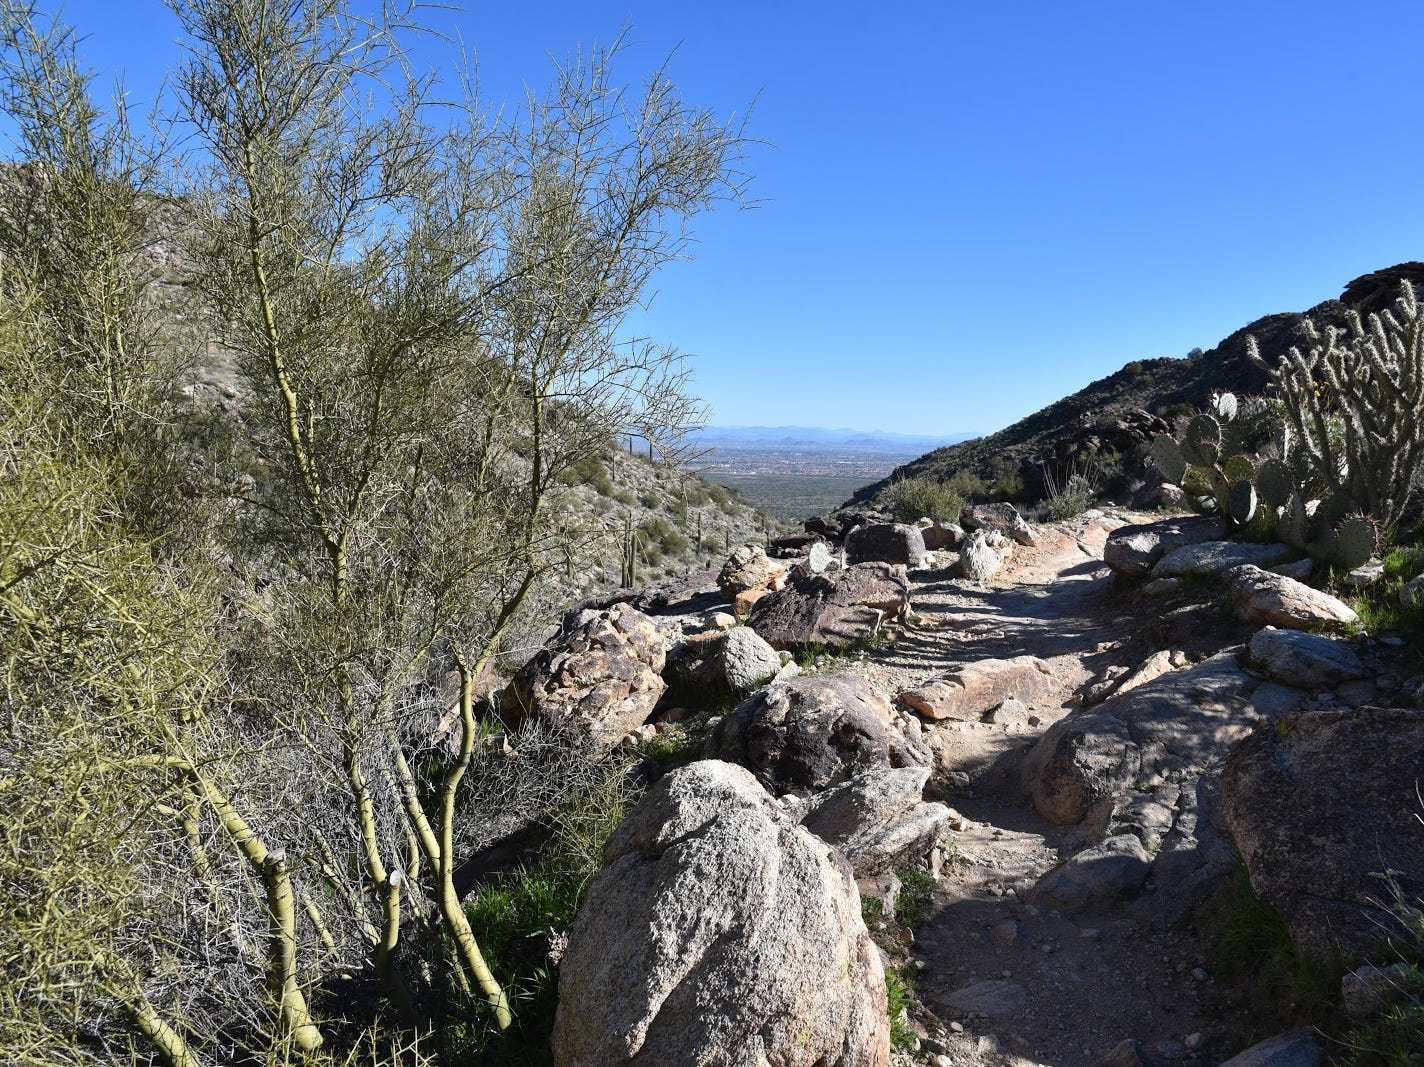 An edge-hugging segment of Mesquite Canyon Trail.